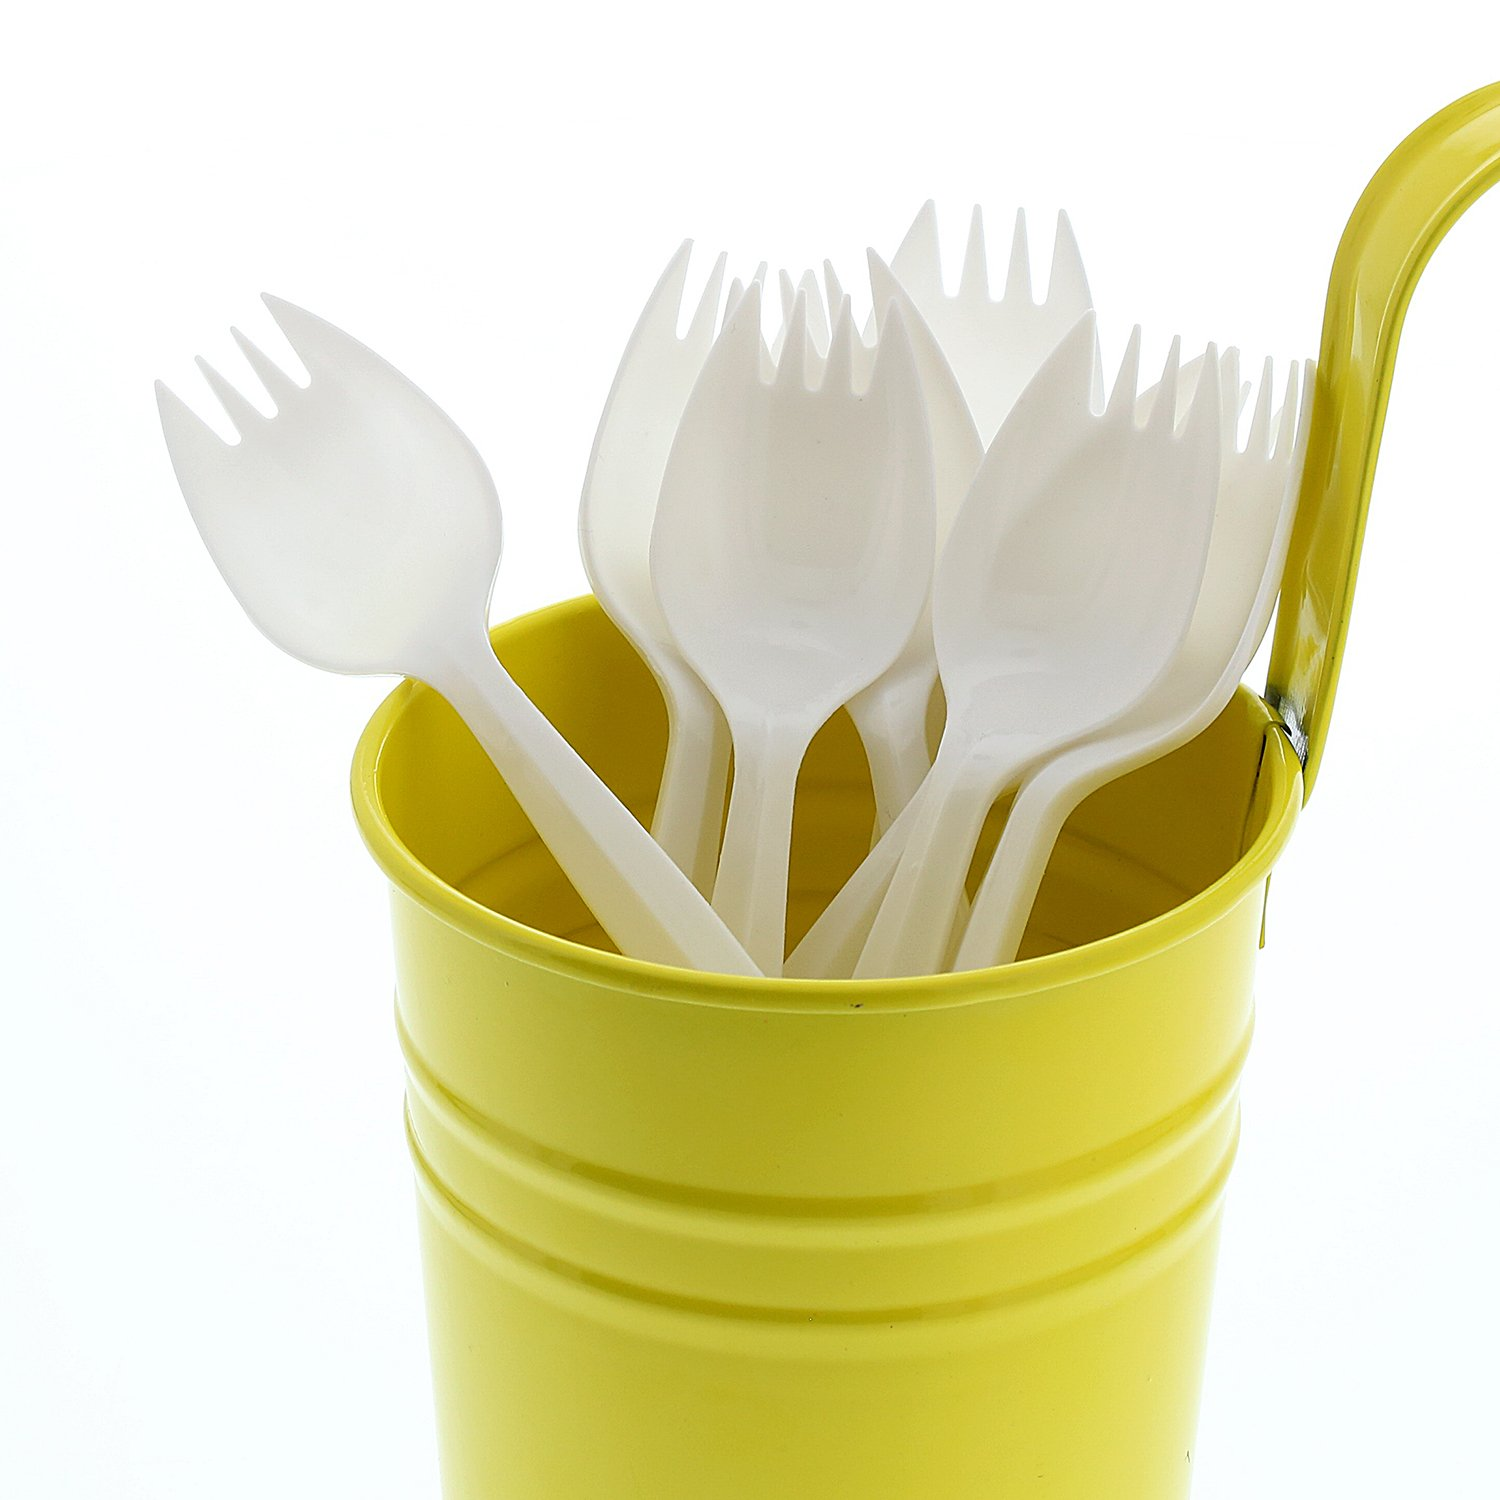 AmerCare Medium Weight Polypropylene Sporks, White, Case of 1000 by AmerCare